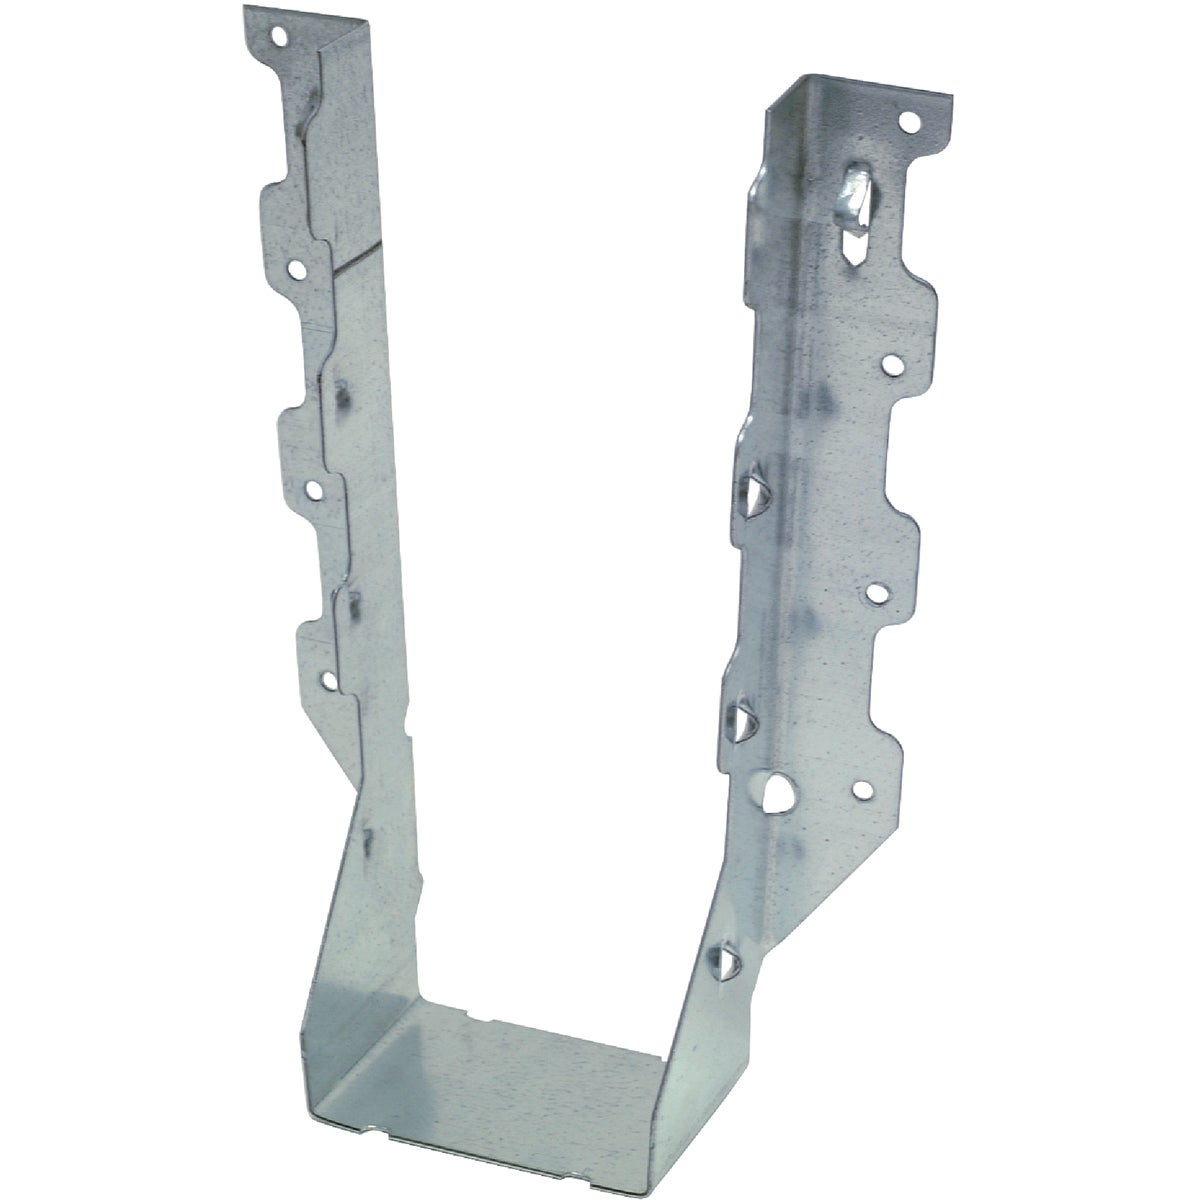 Simpson Strong-Tie 2X10 DOUBLE JOIST HANGER LUS210-2